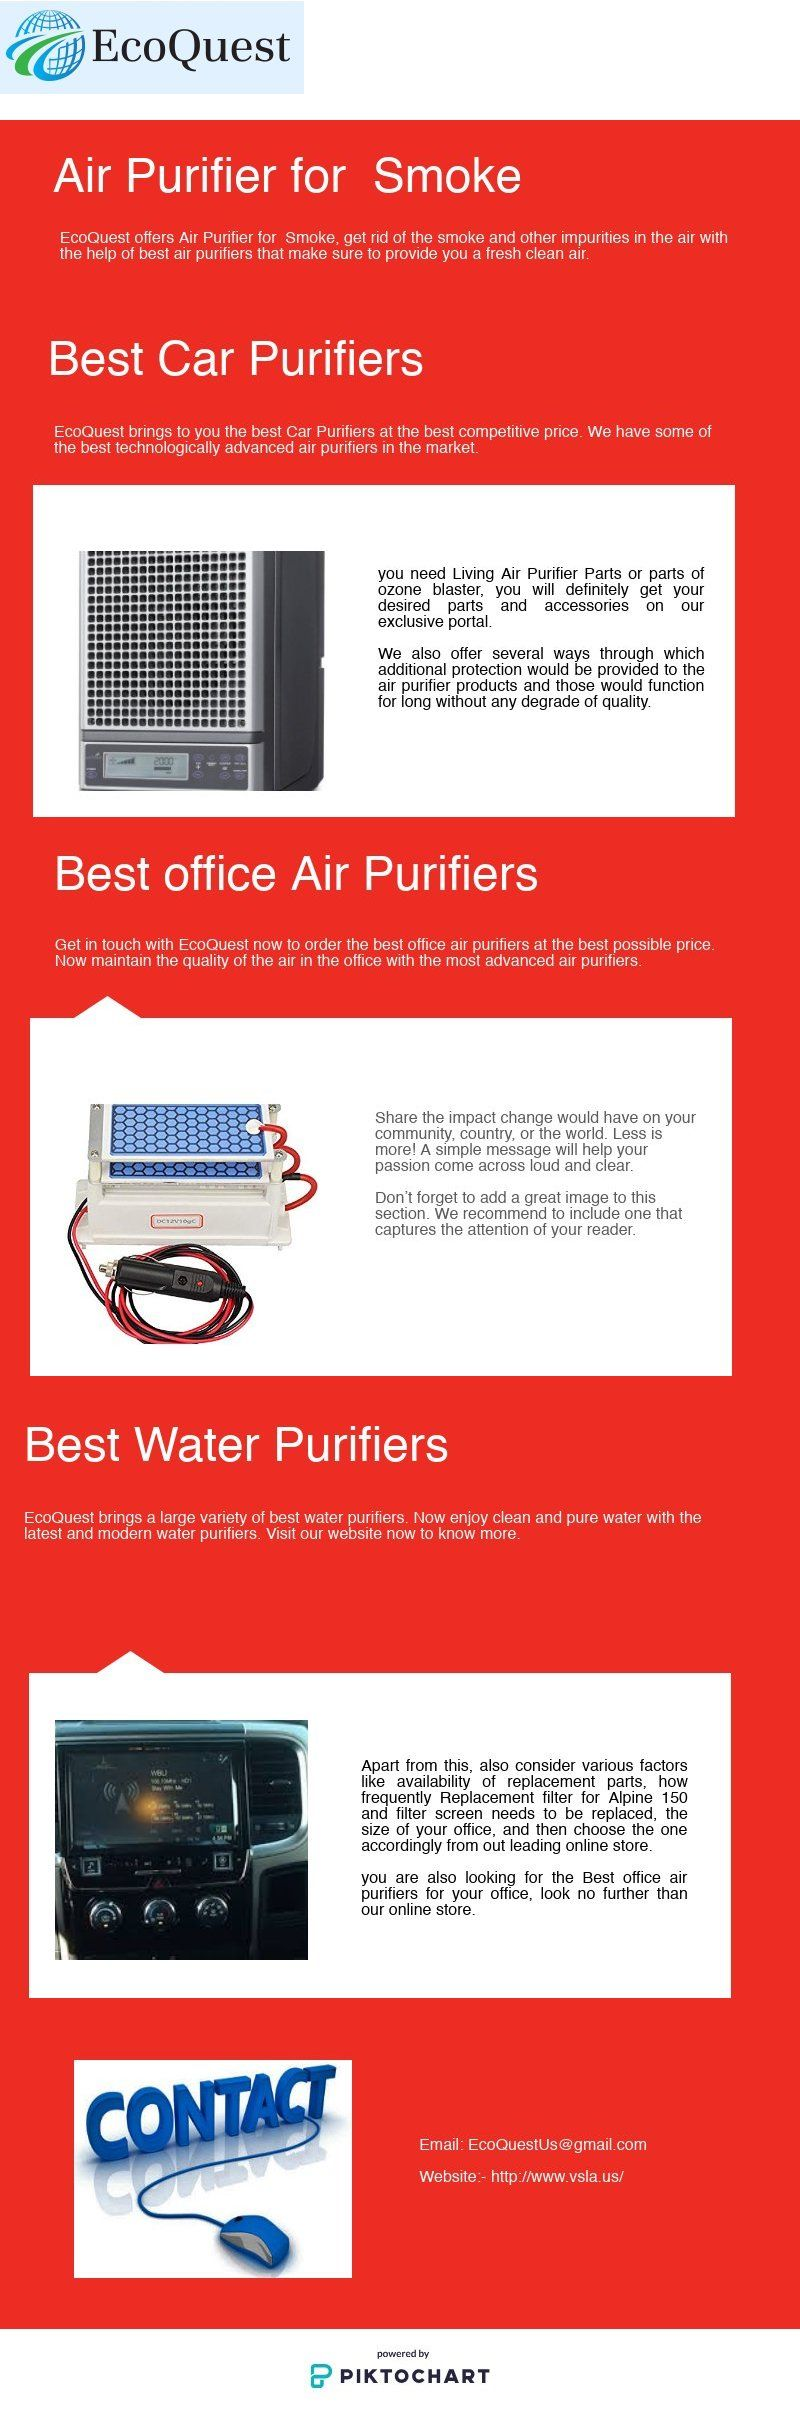 Ecoquest Brings To You Best Personal Air Purifiers At The Most Competitive Price Our Team Of Expert Customer Care Service Is Available Readily To S Air Purifier